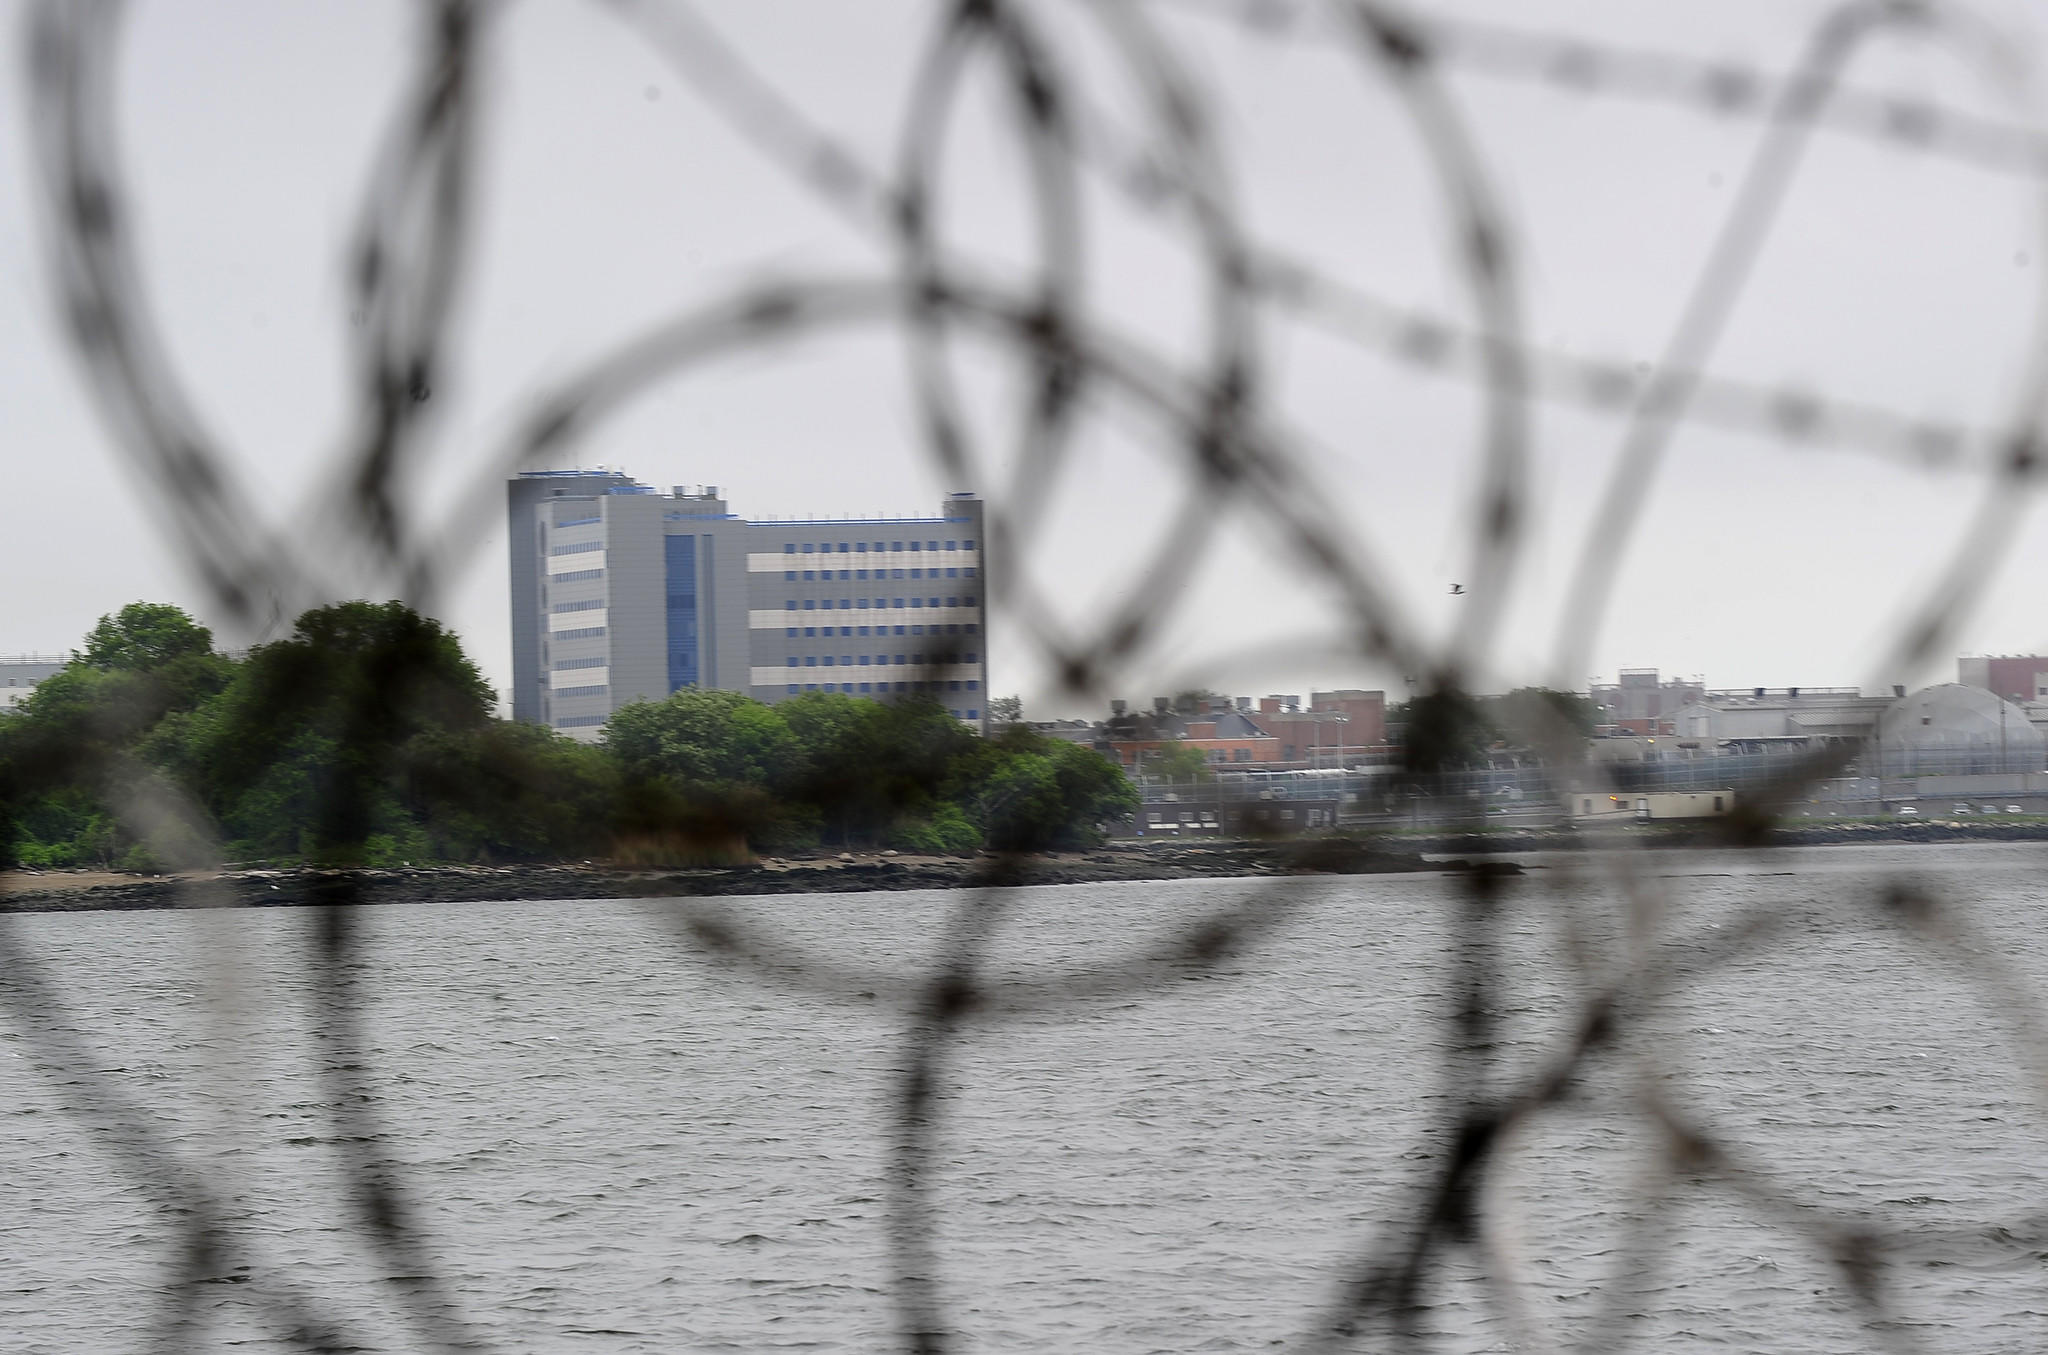 A view of buildings at the Rikers Island penitentiary complex.